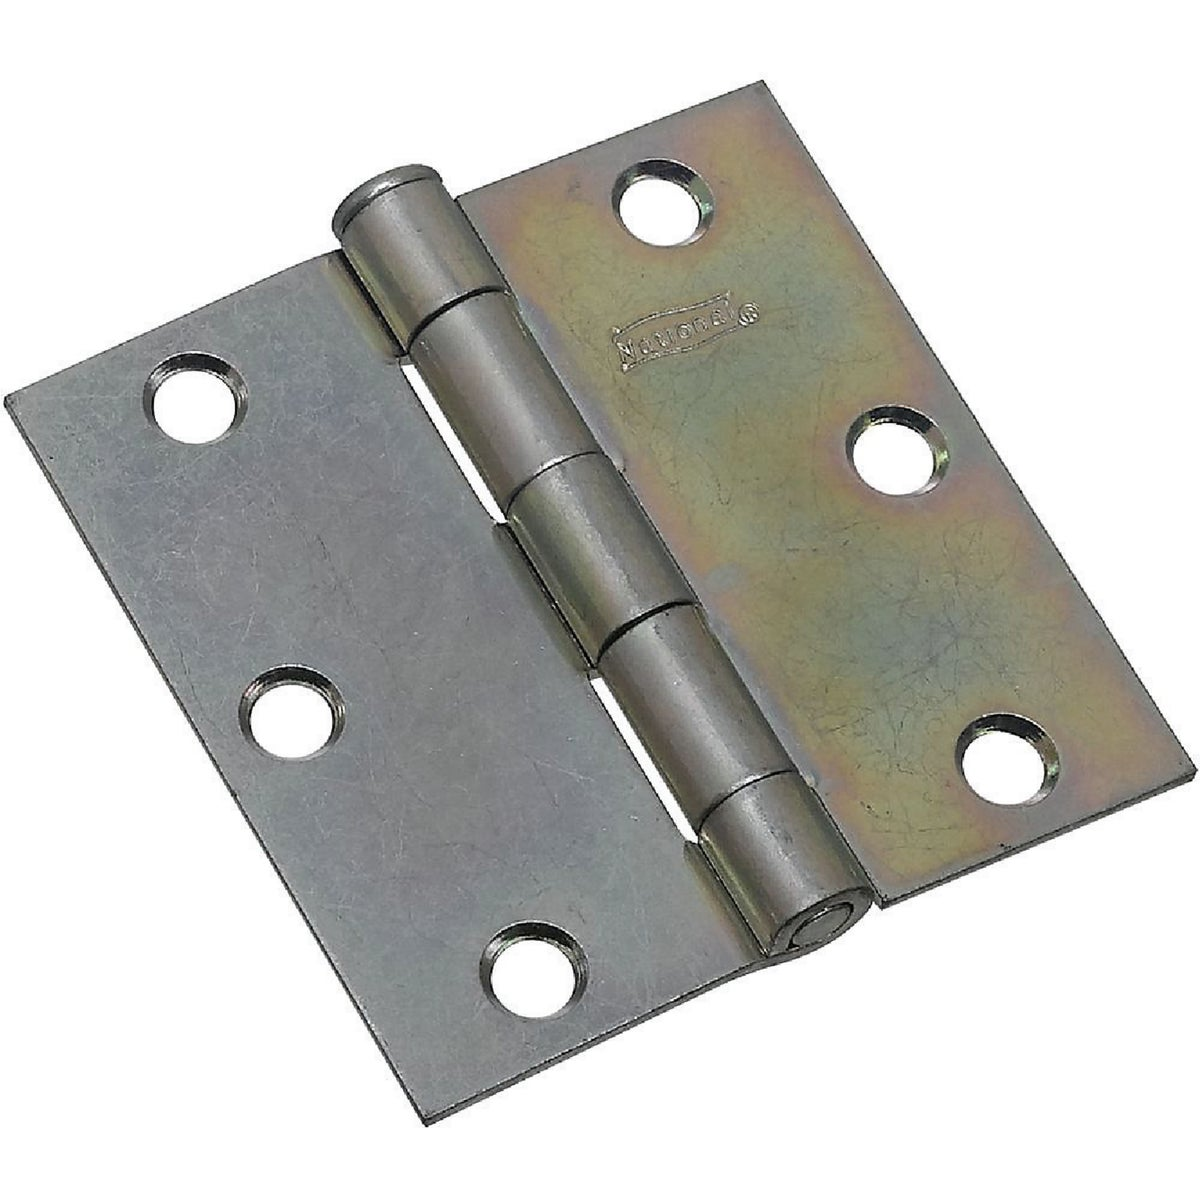 "3"" ZN BROAD HINGE - N195651 by National Mfg Co"